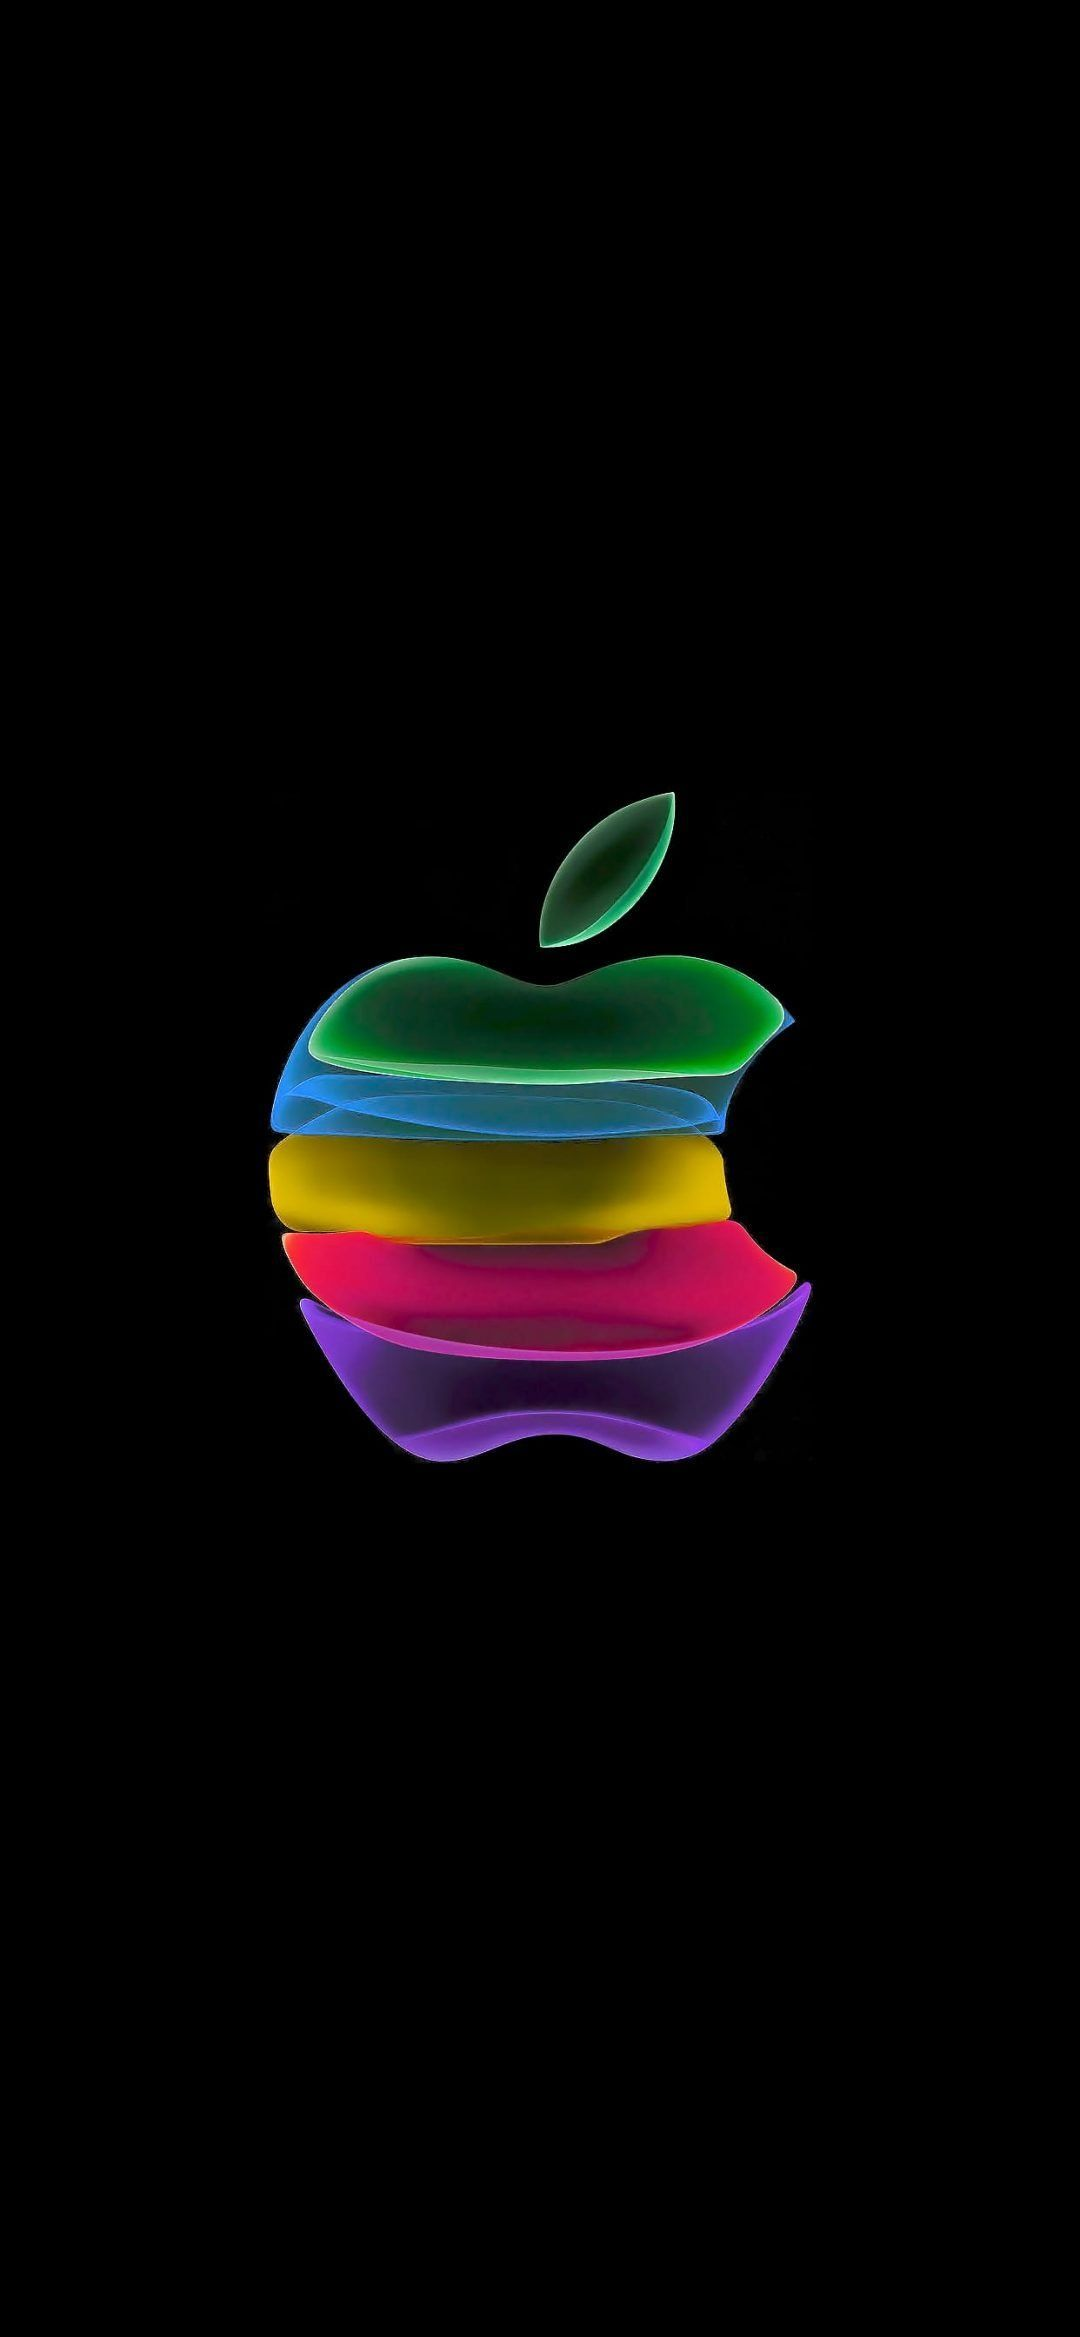 Amazing Iphone 11 Backgrounds In 2020 Apple Logo Wallpaper Iphone Apple Logo Wallpaper Iphone 9 Wallpaper